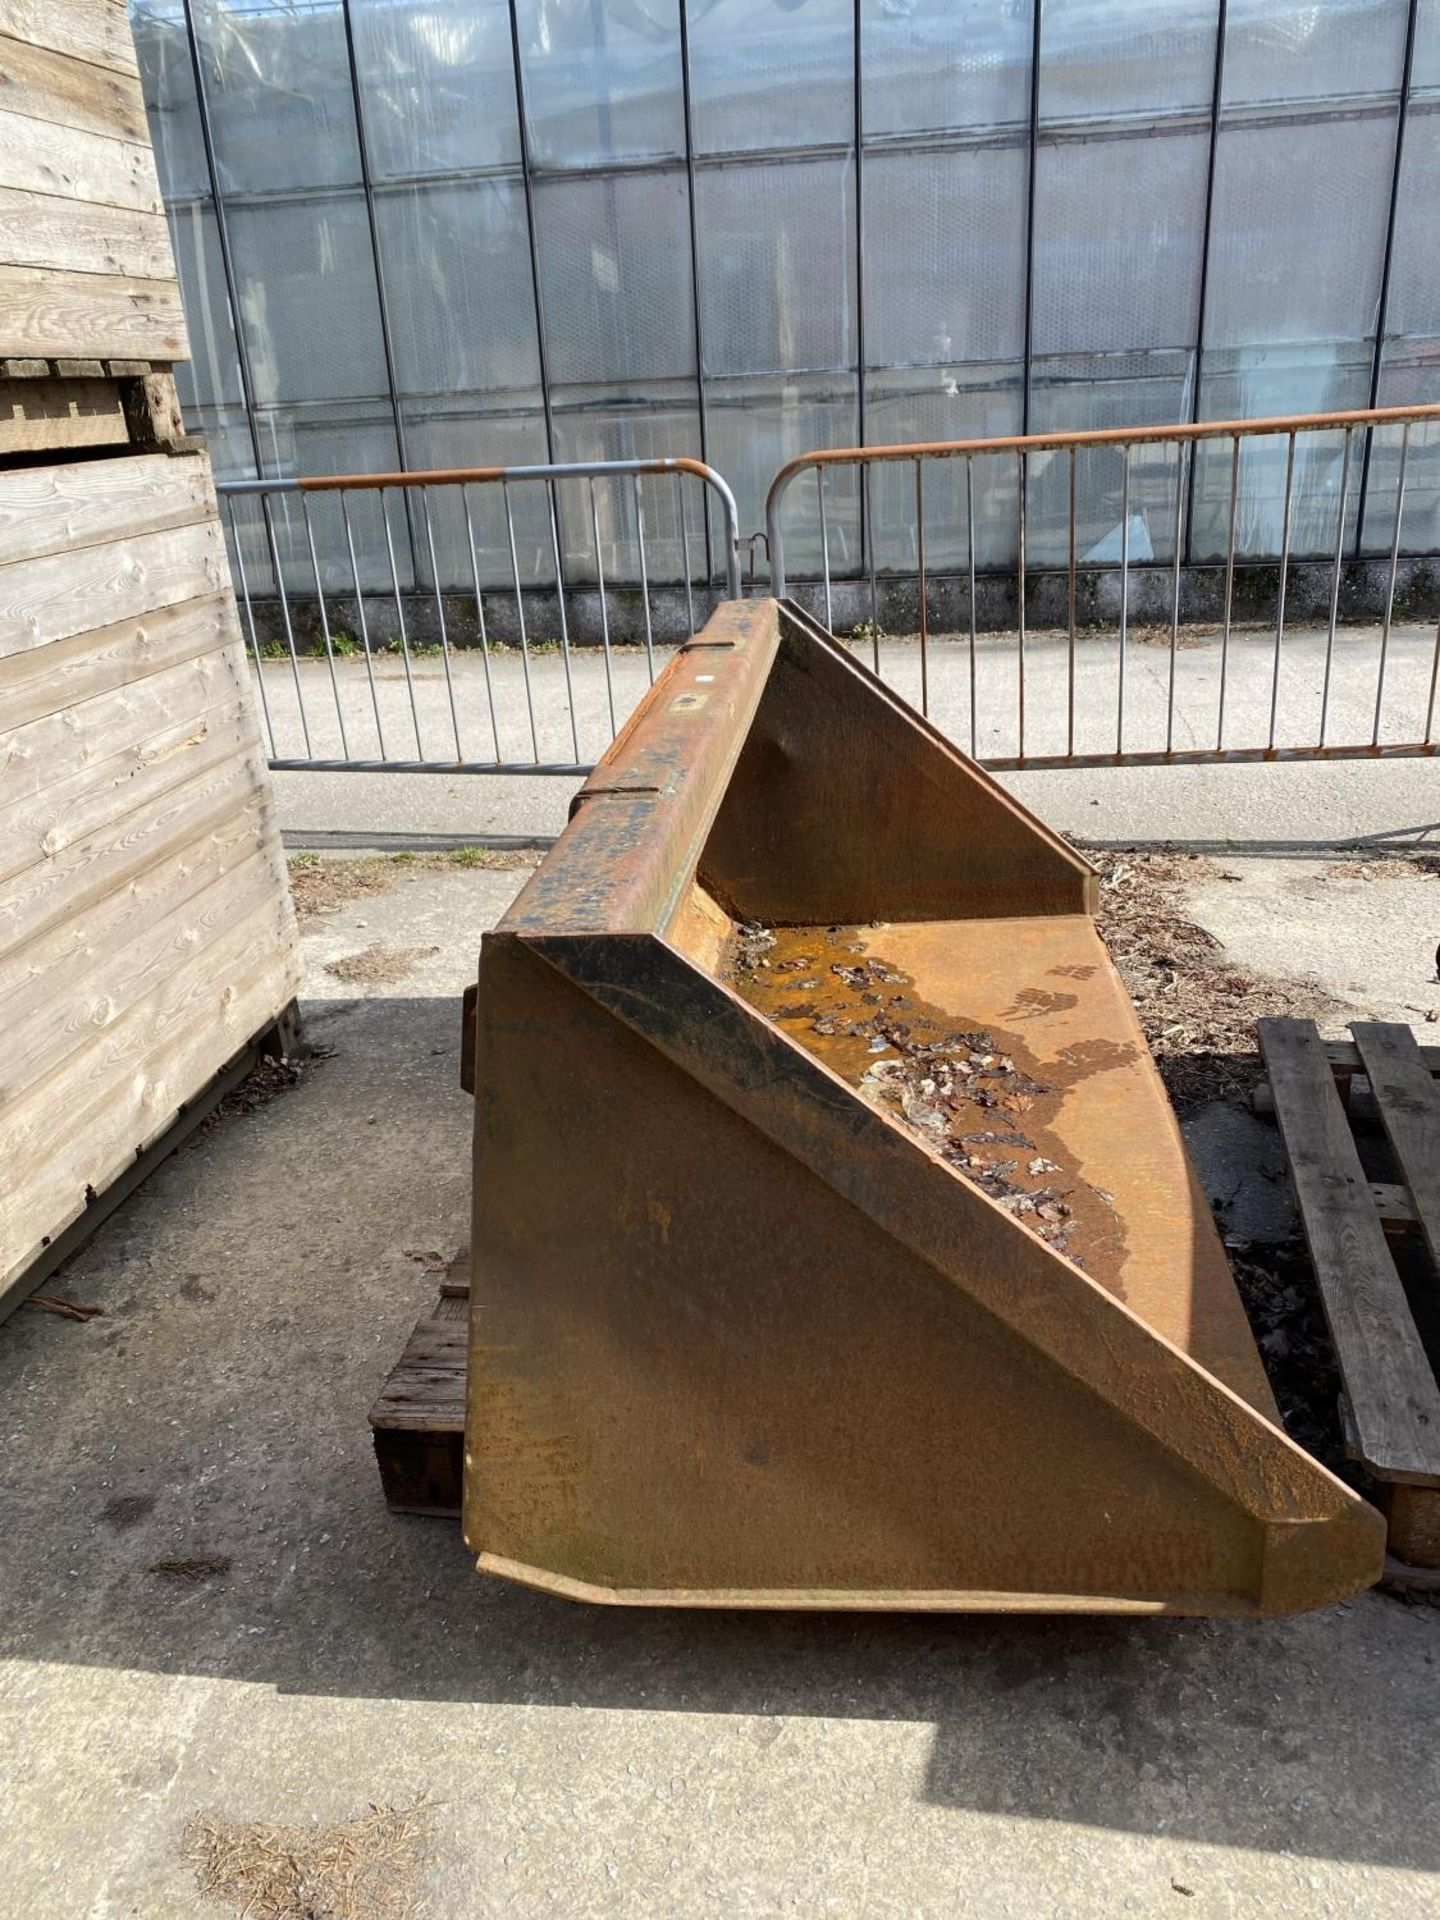 A FORE END LOADER BUCKET (FITS LOT 50) - Image 2 of 3